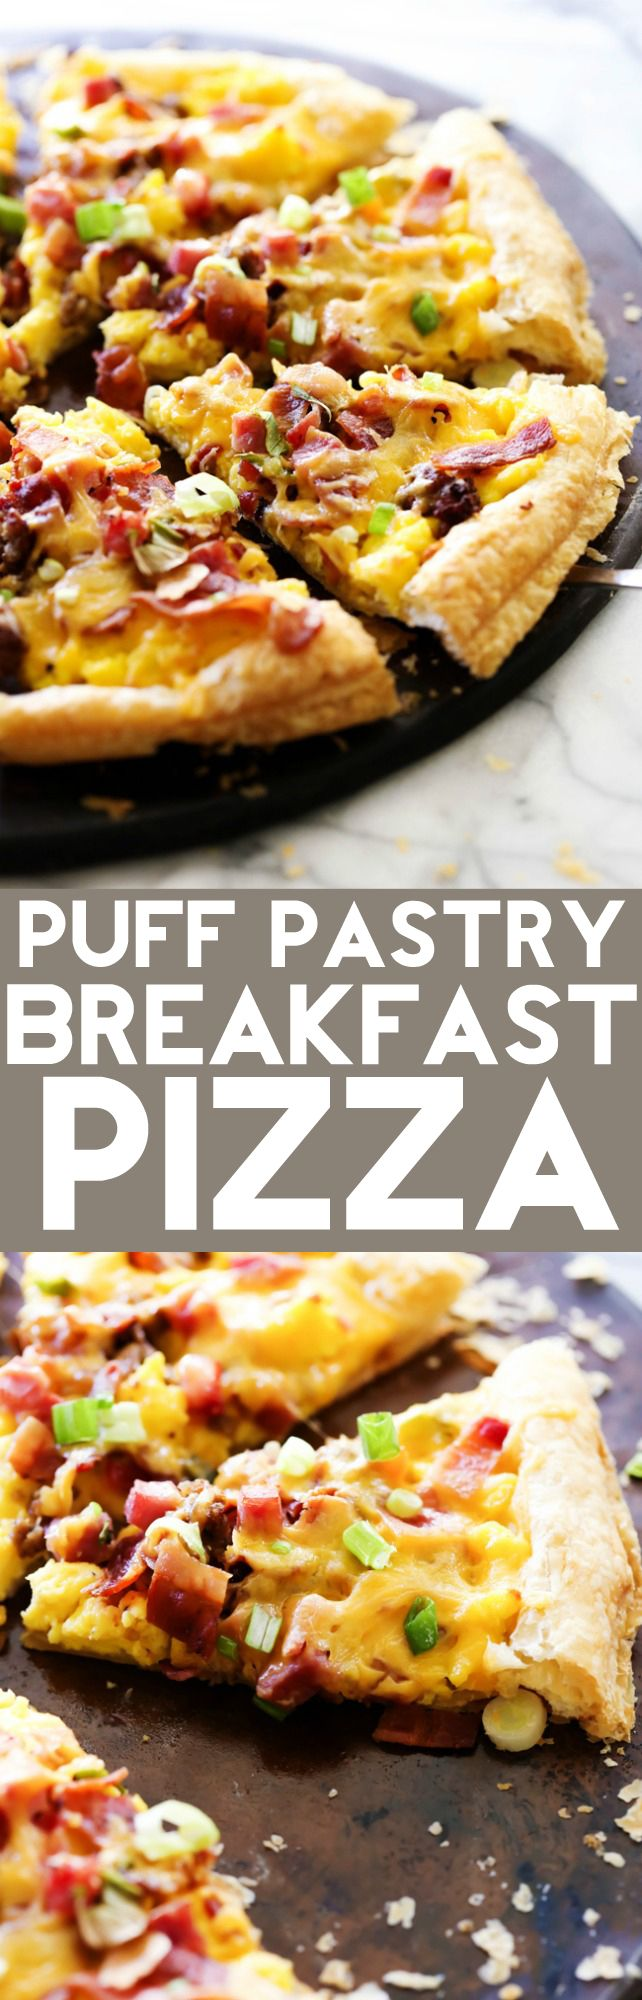 This Puff Pastry Breakfast Pizza is SO easy to make and is such a crowd pleaser…